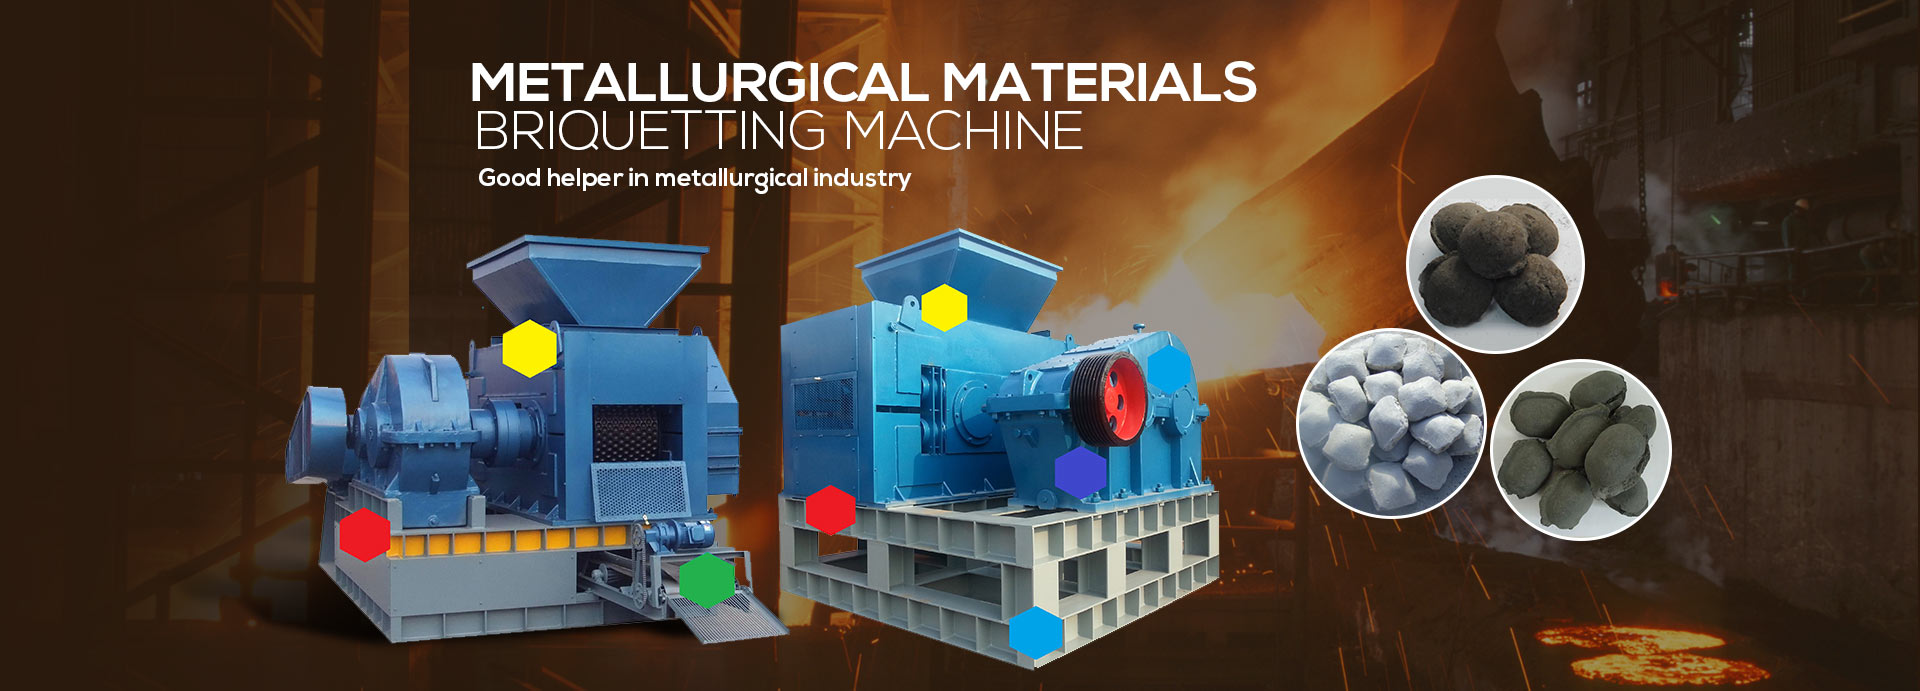 metallurgical briquette machine